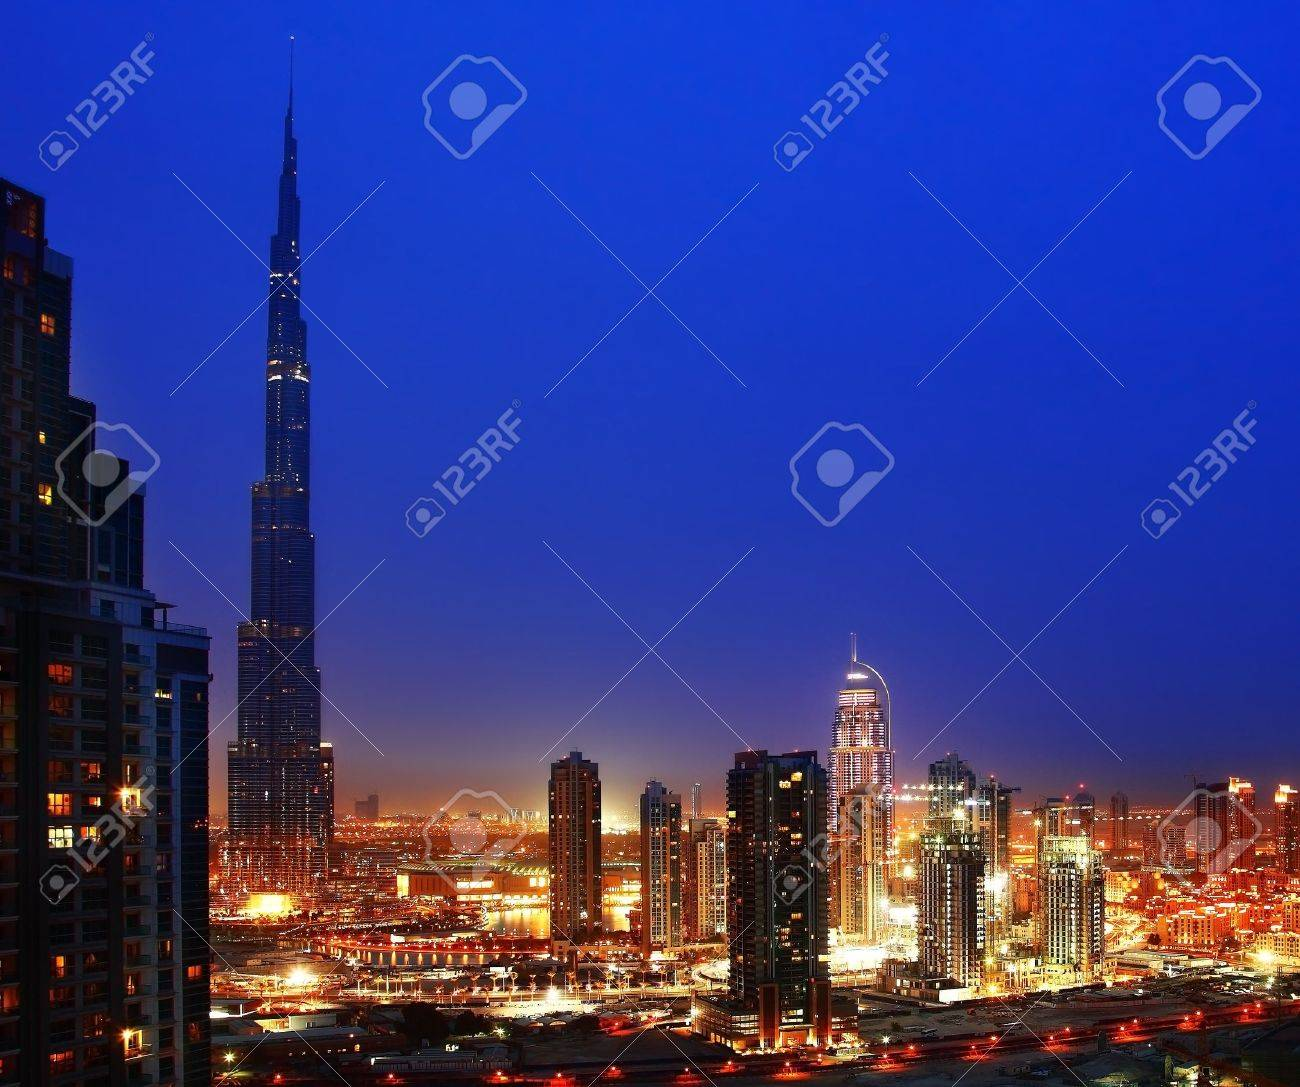 Dubai downtown night scene with city lights Stock Photo - 9327302